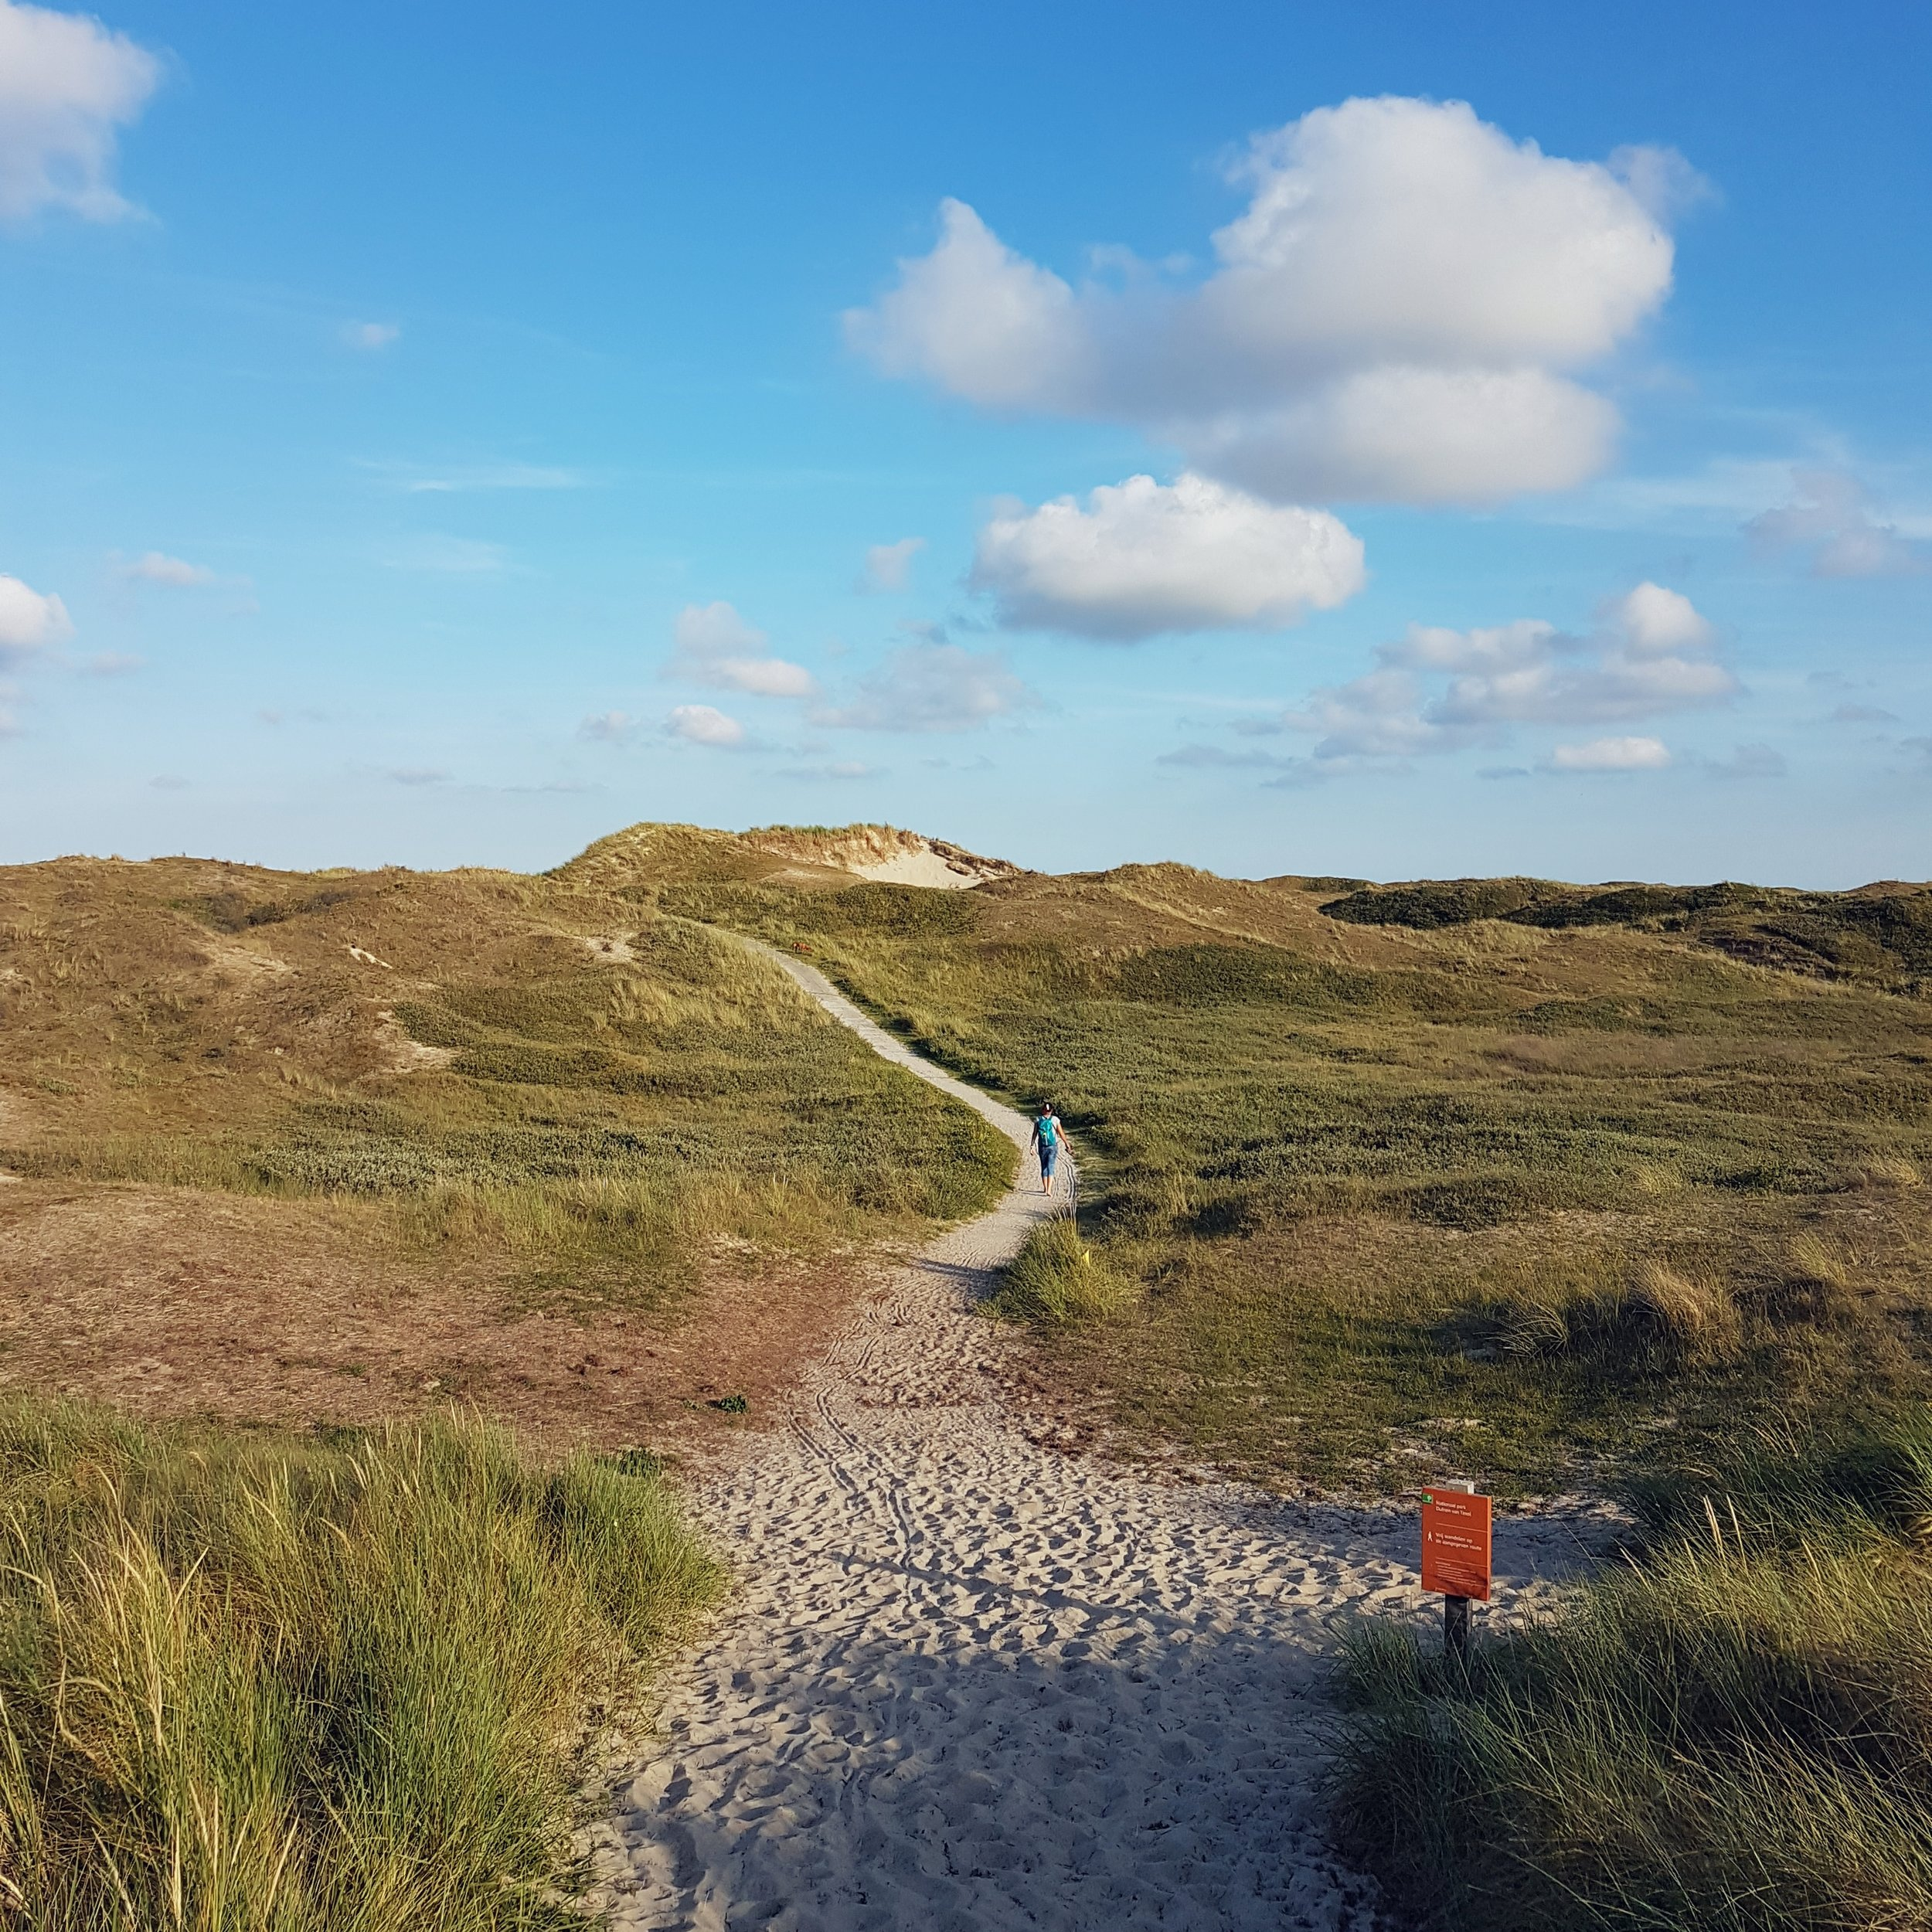 The dune area is pretty remarkable and it is a great place to wander and explore.